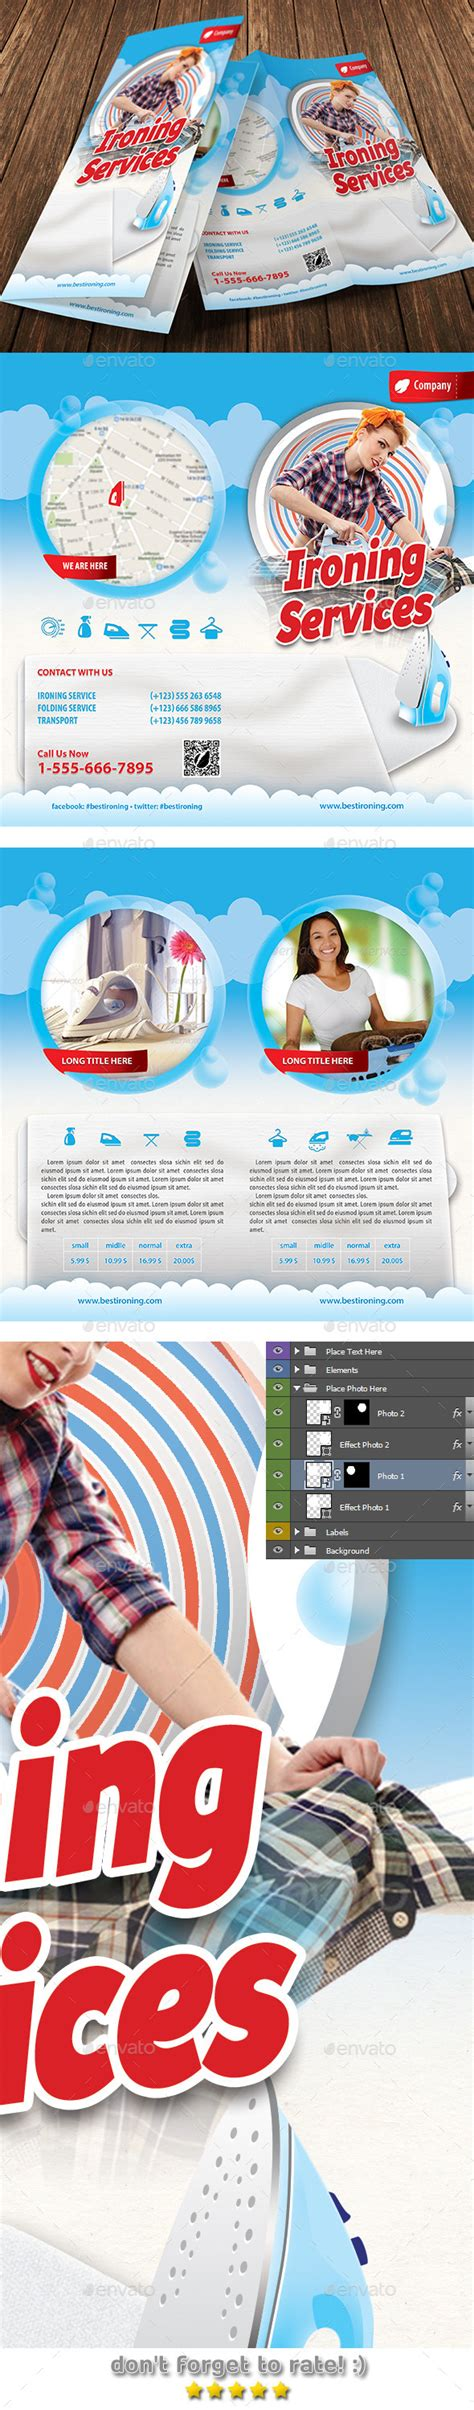 ironing service flyer template ironing and laundry services offer bifold brochure by